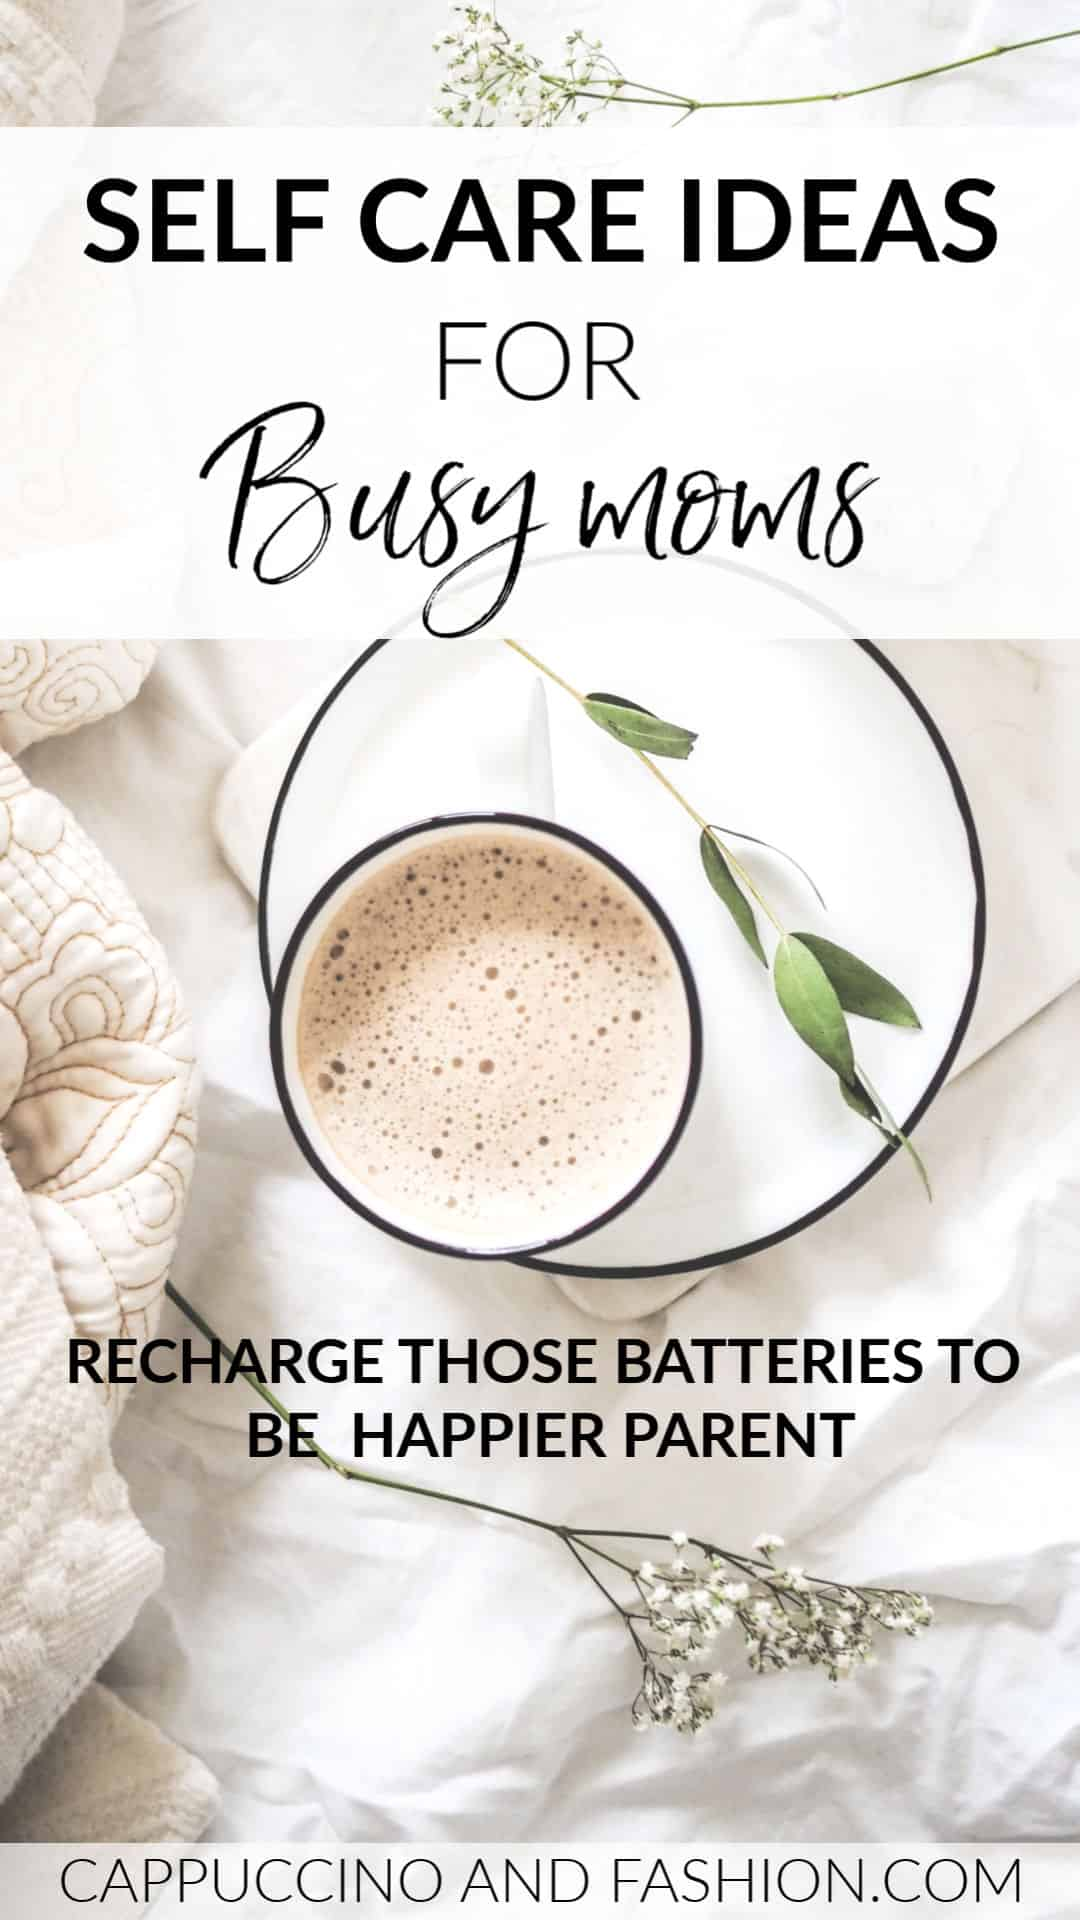 Self care ideas for busy moms at home